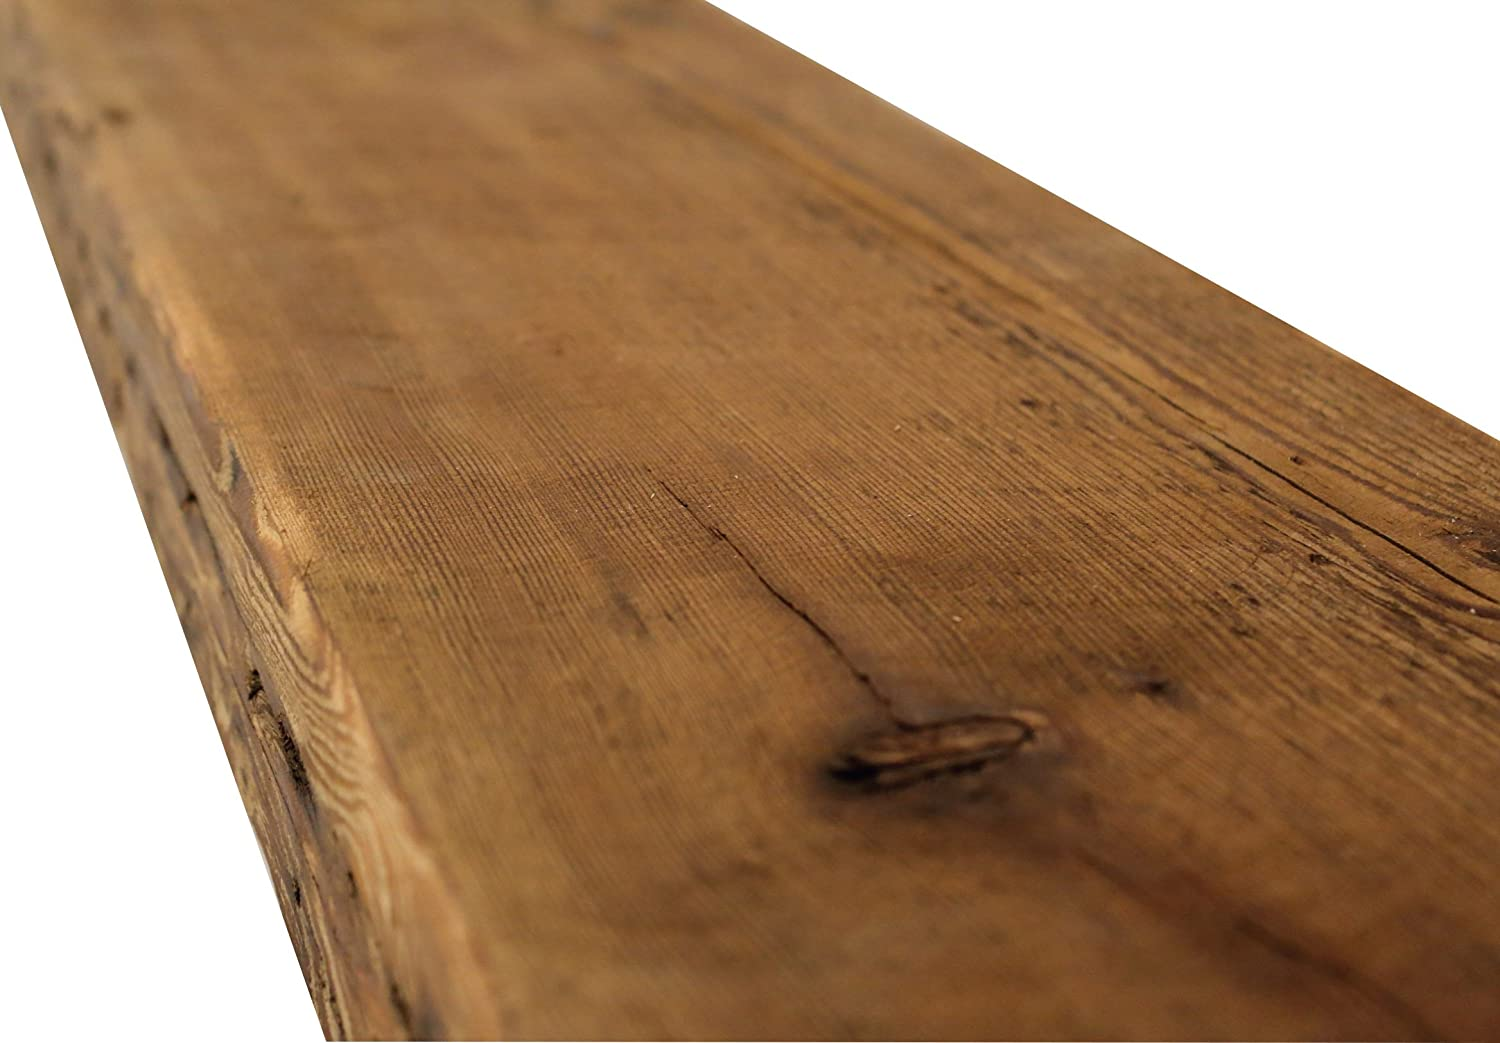 Fireplace Mantel Shelf Reclaimed Barn Wood with Hardware Floating,Solid Modern Timber Craft 12 W x 7 D x 2 3//4 H Rustic